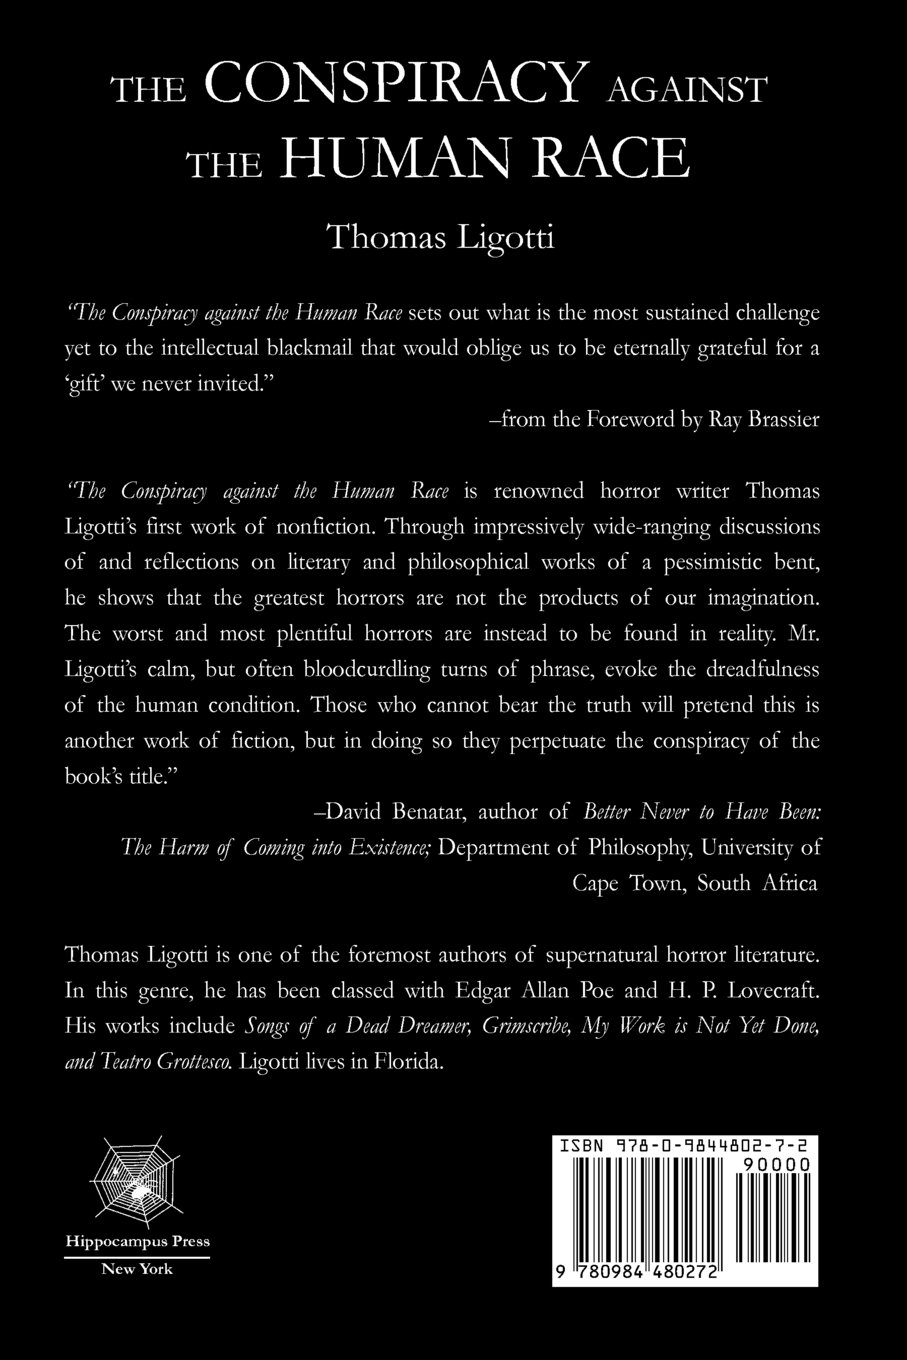 Sample Essay For Scholarship Amazoncom The Conspiracy Against The Human Race A Contrivance Of Horror   Thomas Ligotti Ray Brassier Books What Is The Thesis Of A Research Essay also Spring Break Essay Amazoncom The Conspiracy Against The Human Race A Contrivance Of  The Sun Also Rises Essay